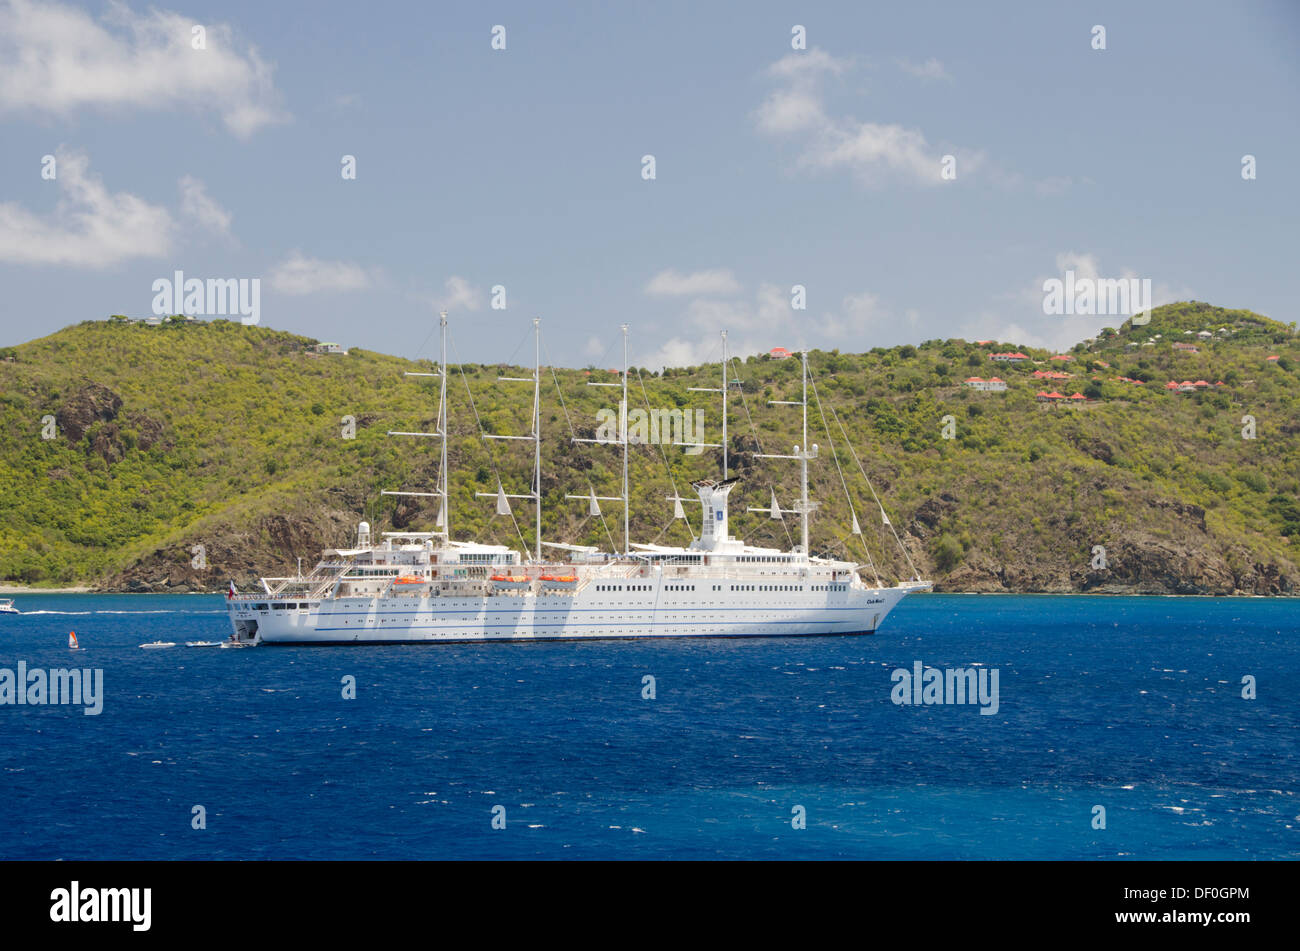 French West Indies, Caribbean island of Saint Barthelemy (St. Bart's), capital city of Gustavia. Club Med ship, Club Med 2 - Stock Image